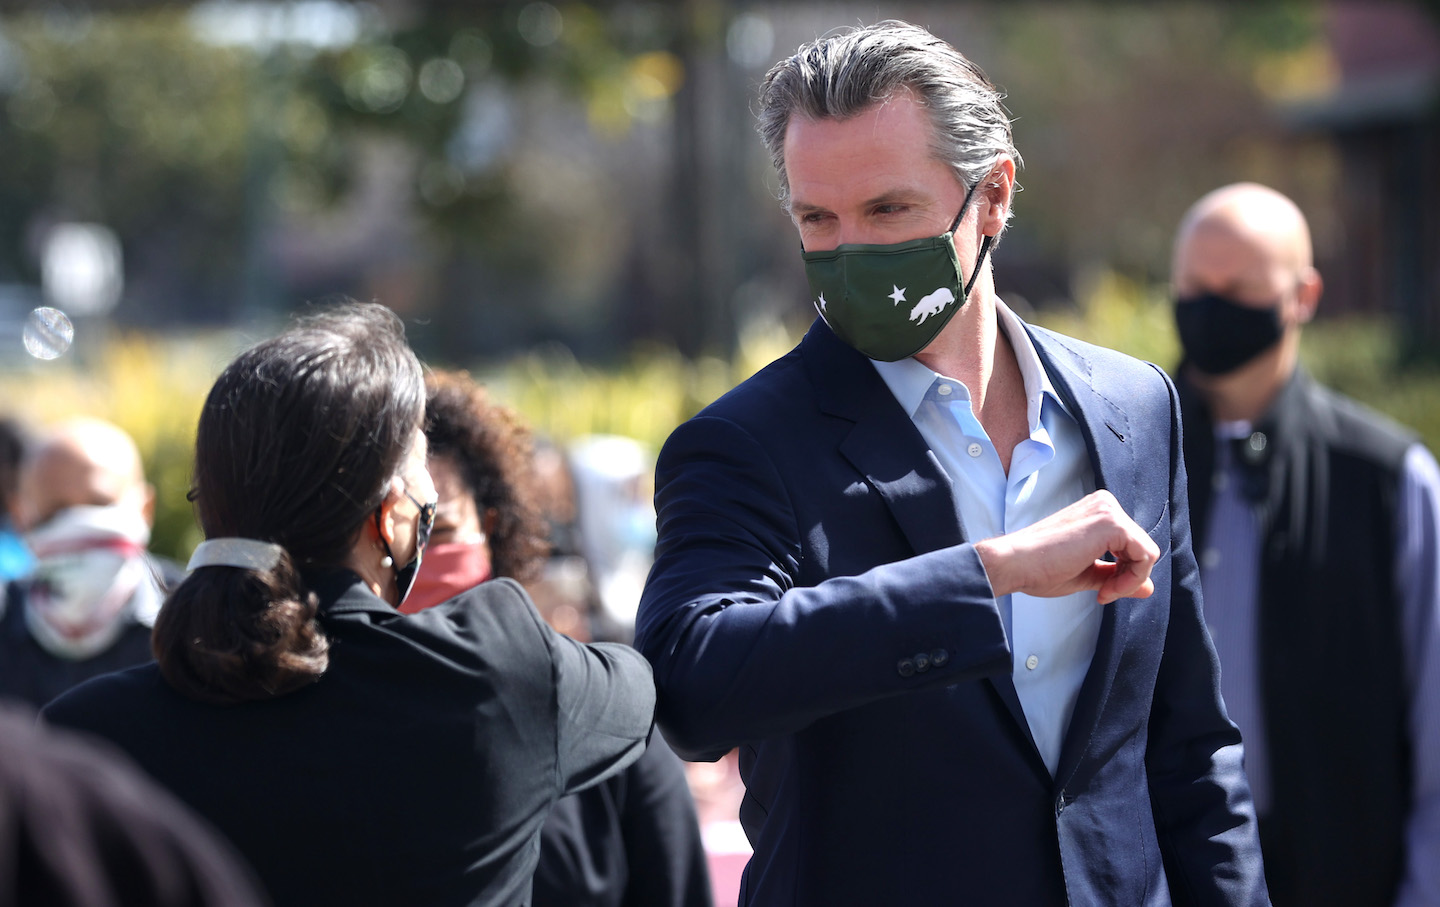 Governor Gavin Newsom Visits School To Highlight State's Reopening Efforts